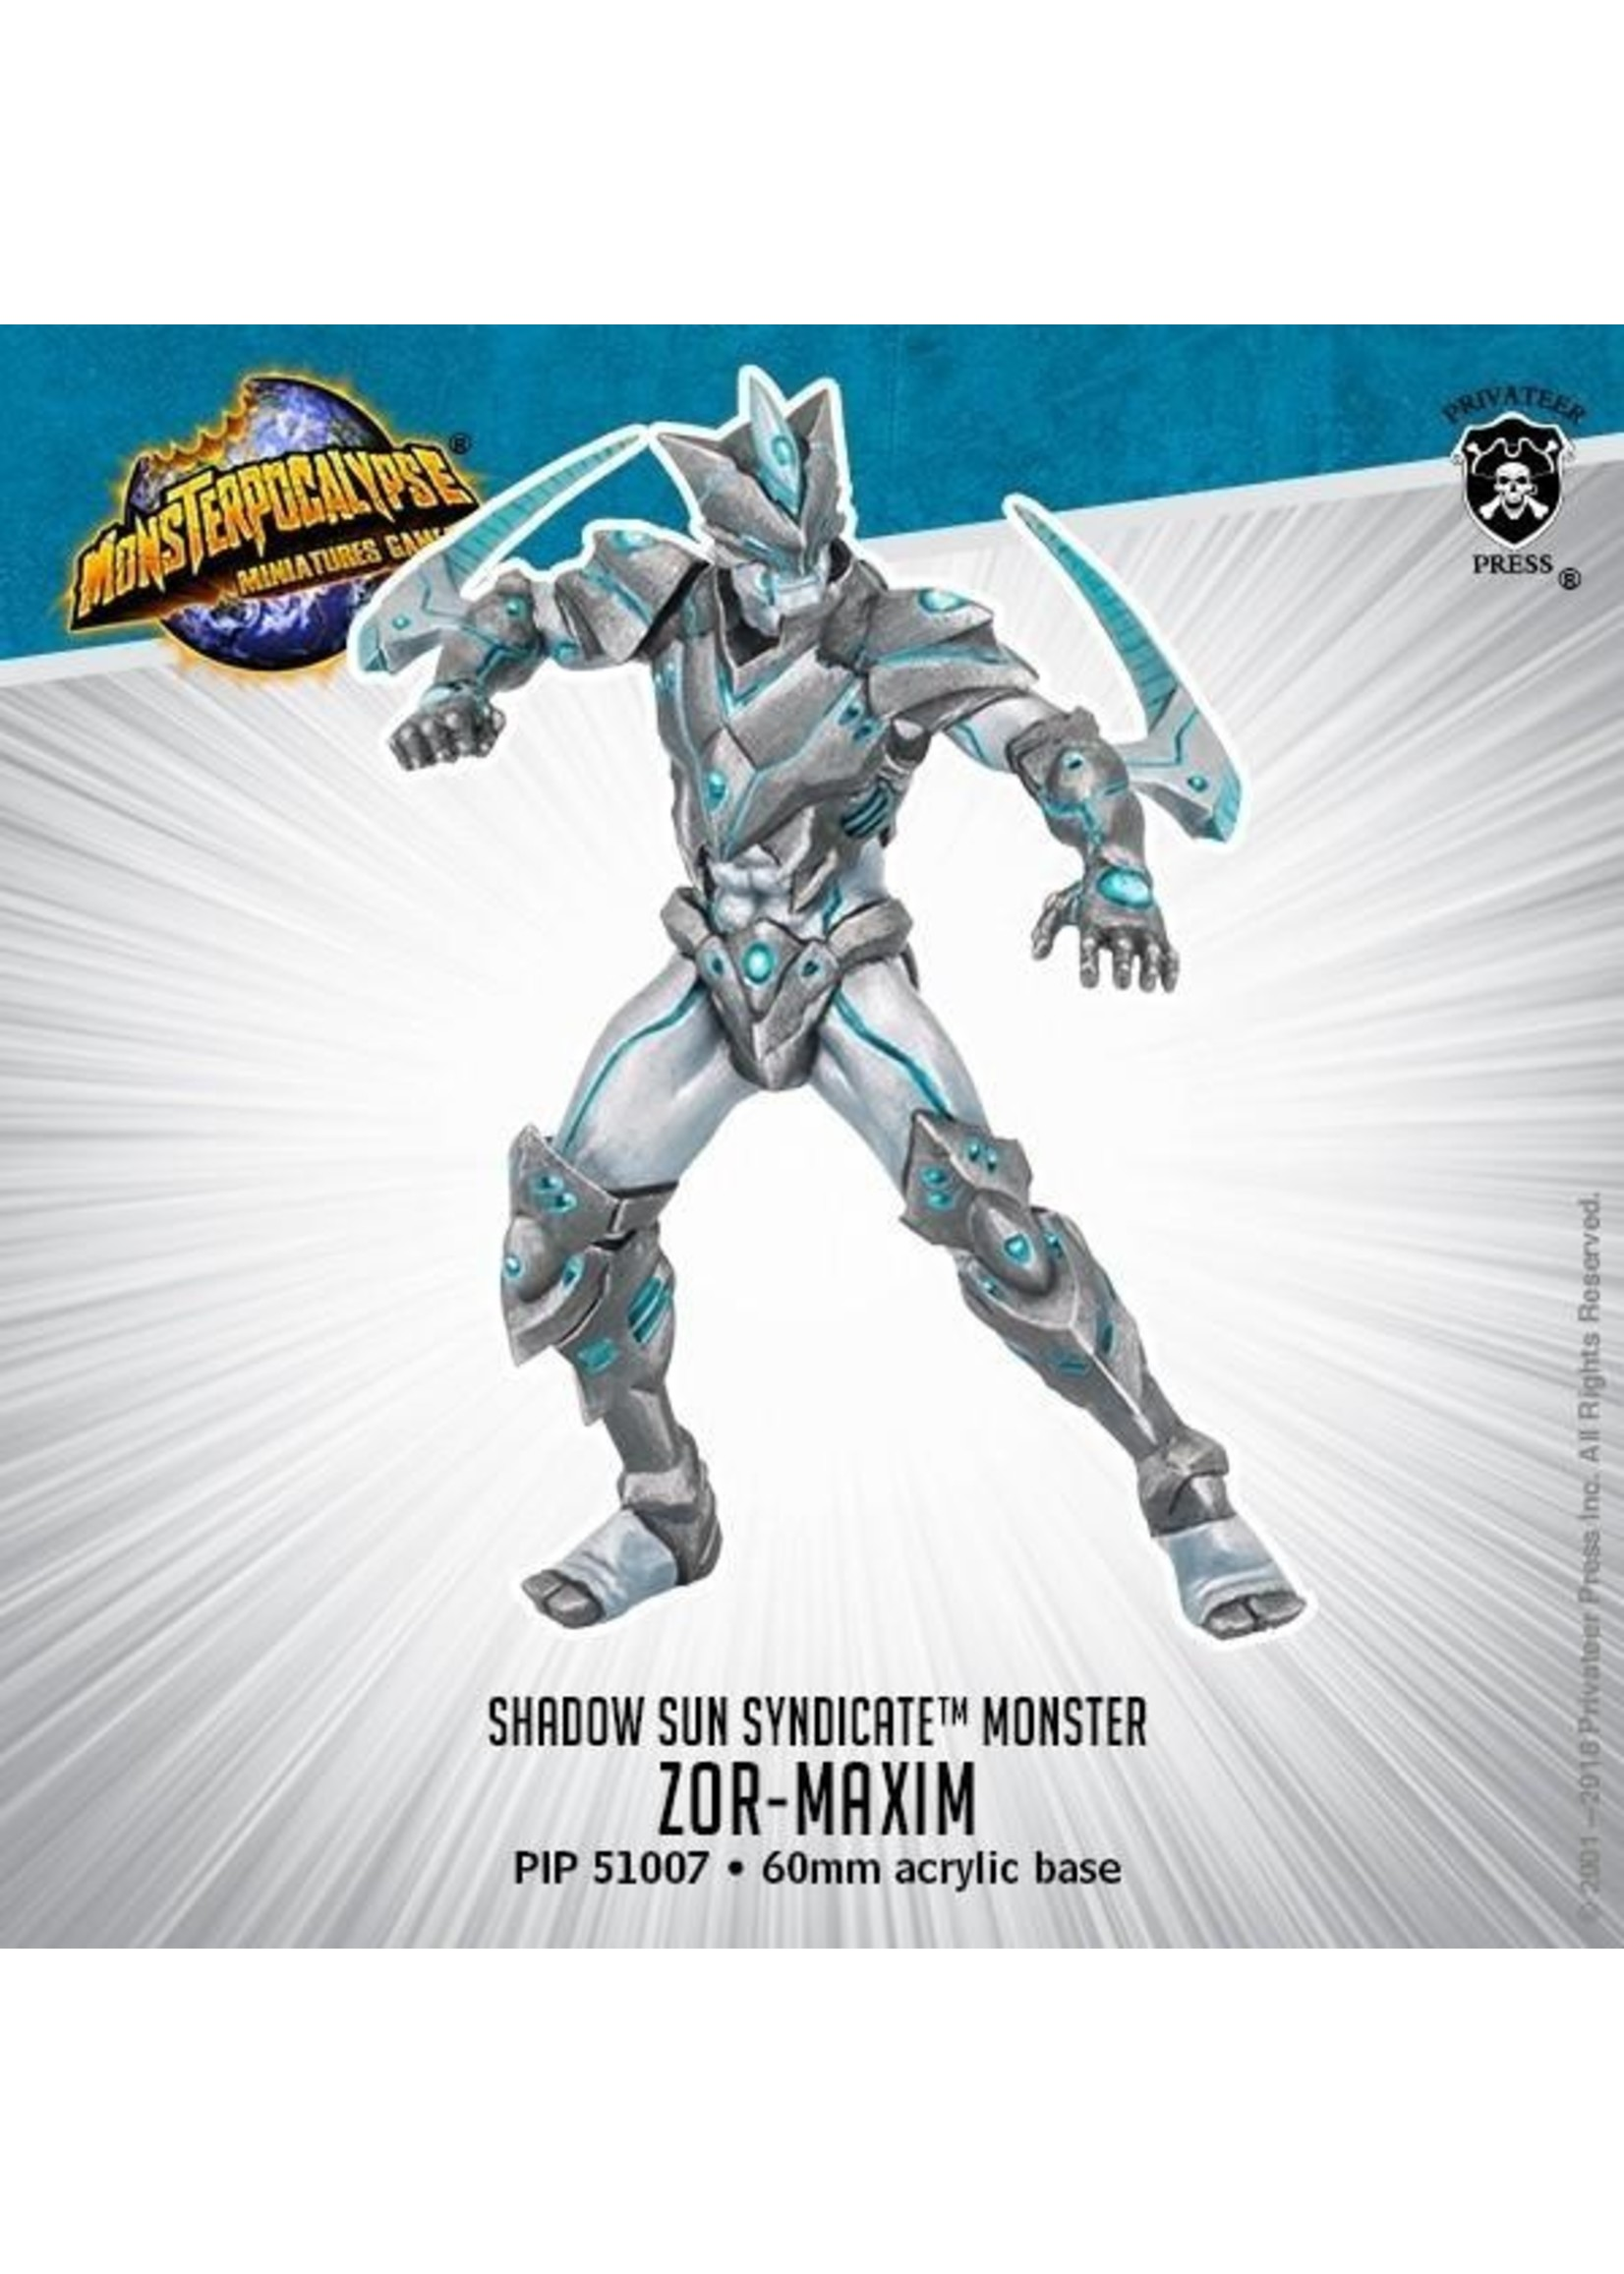 Monsterpocalypse: Shadow Sun Syndicate Zor-Maxim Monster (Resin and White Metal)